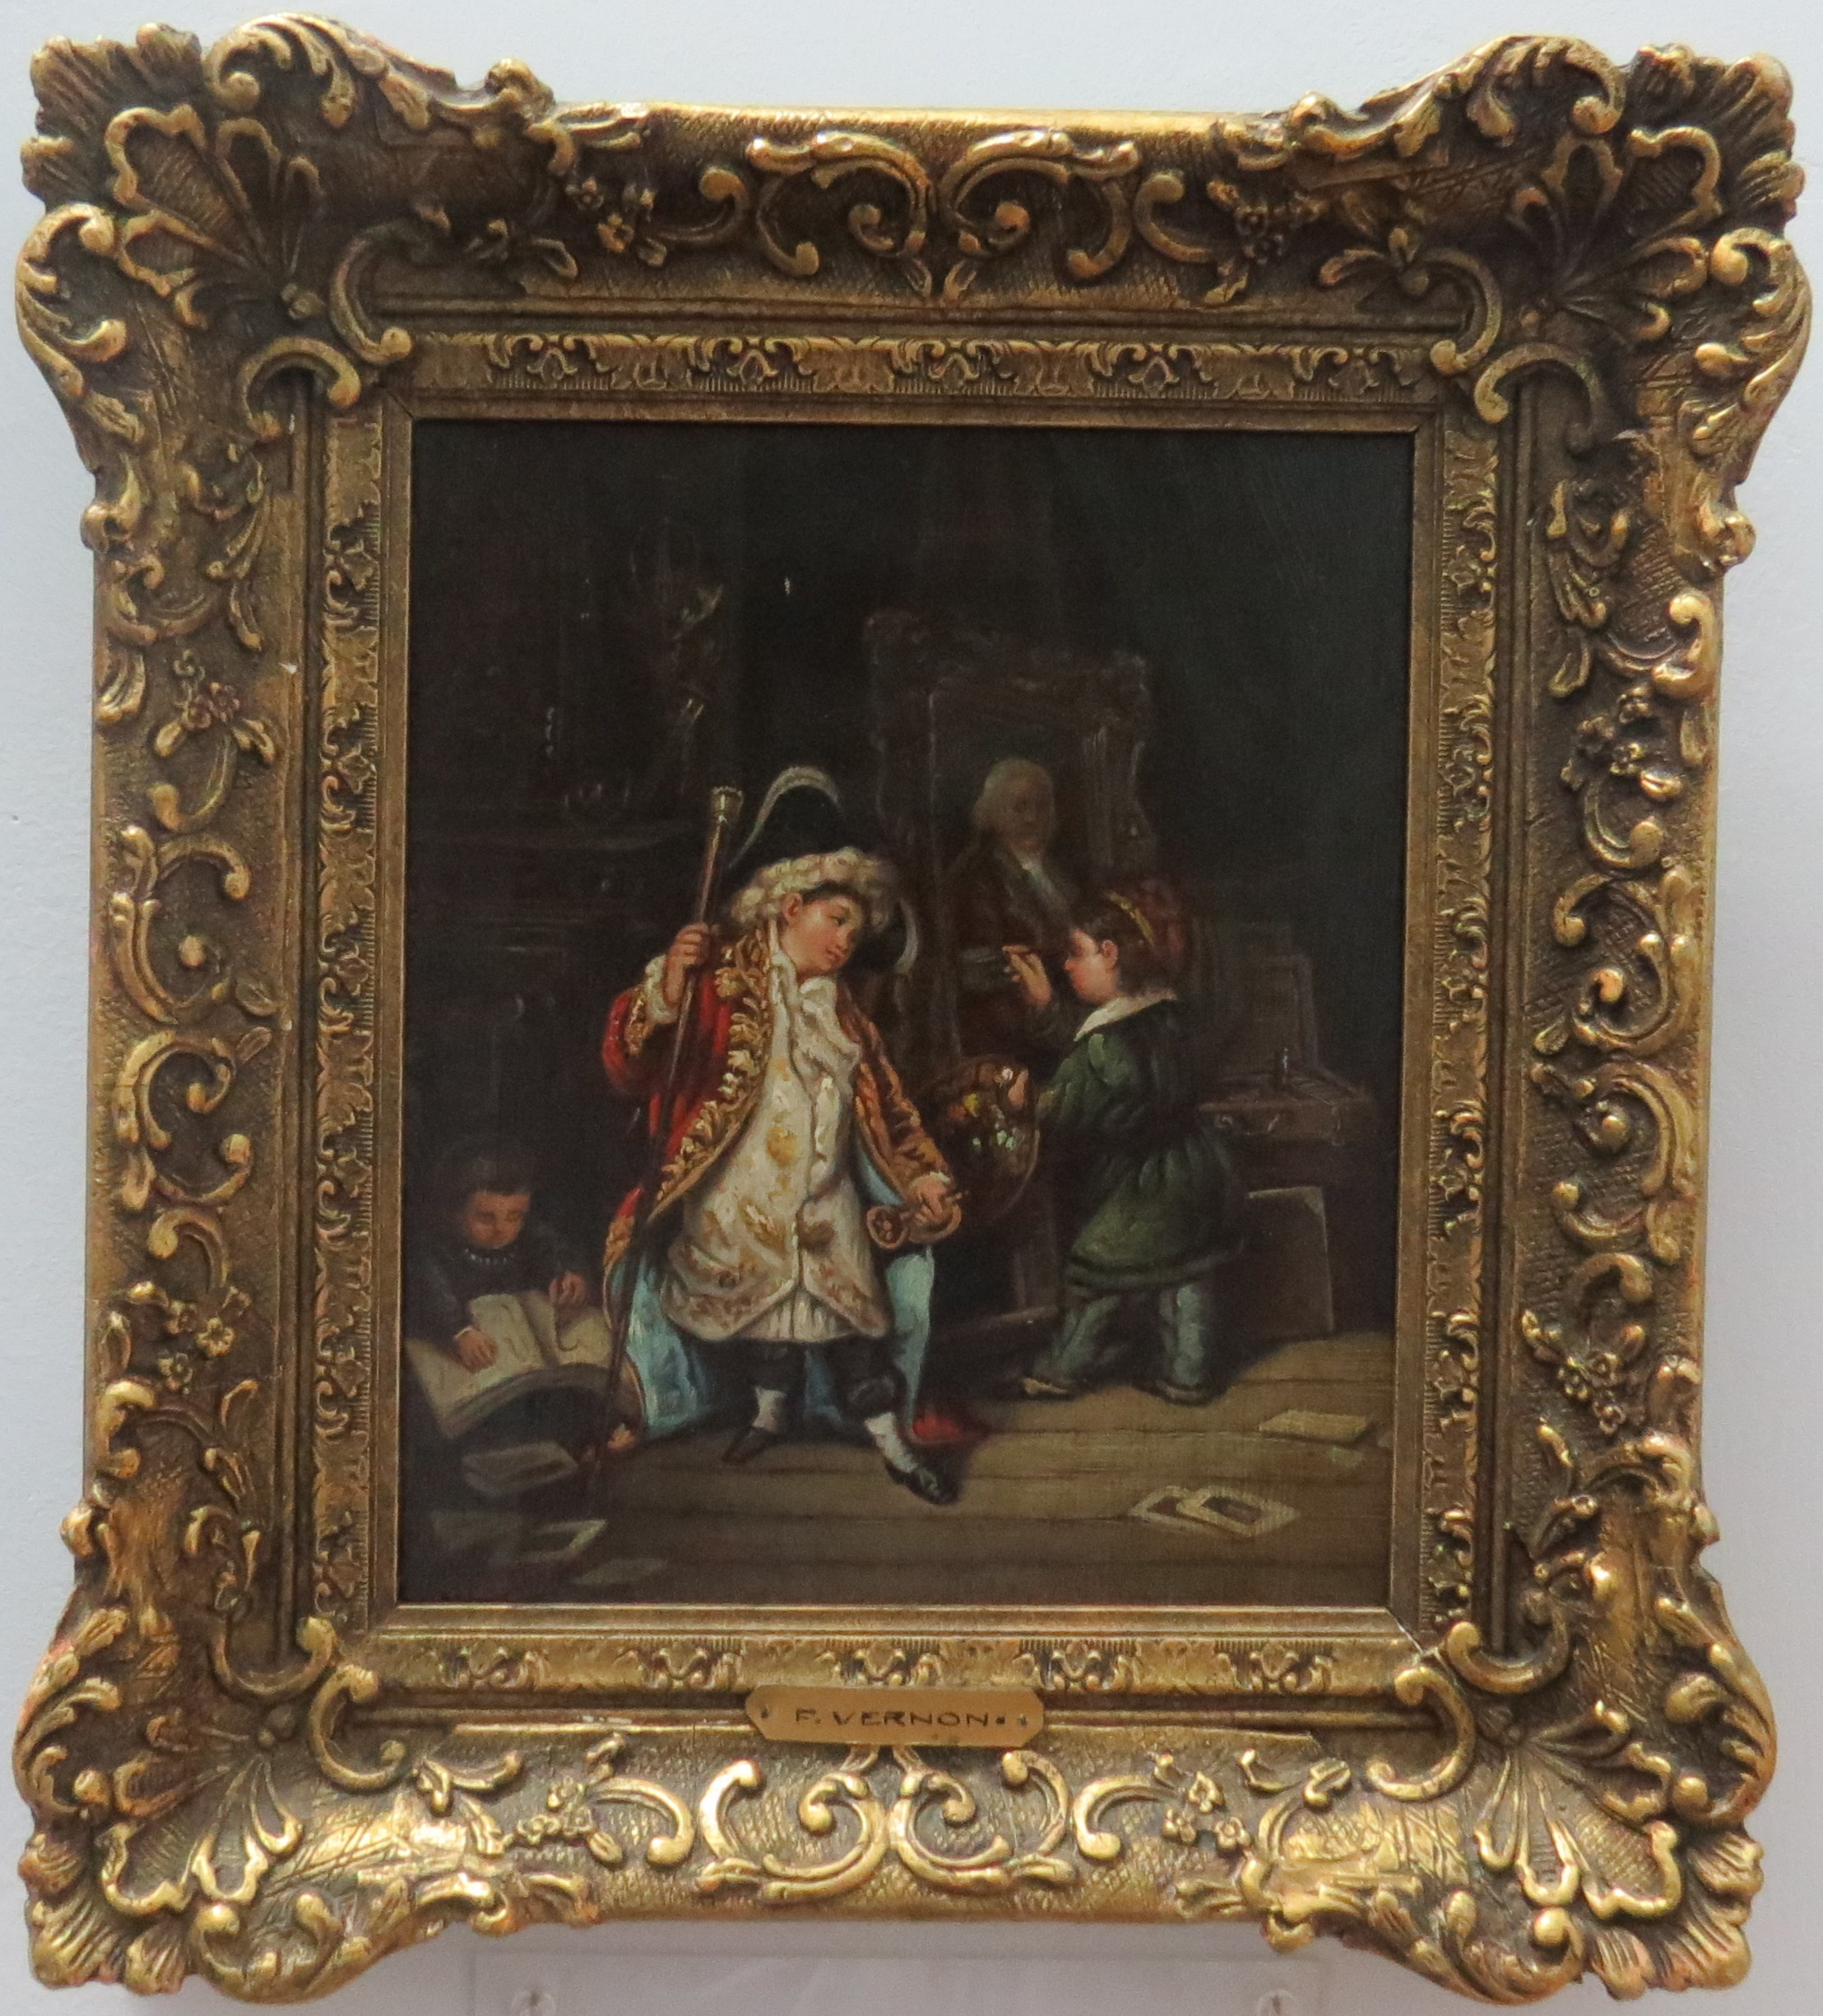 Oil on Canvas of a Boy Posing for an Artist, Signed F. Vernon